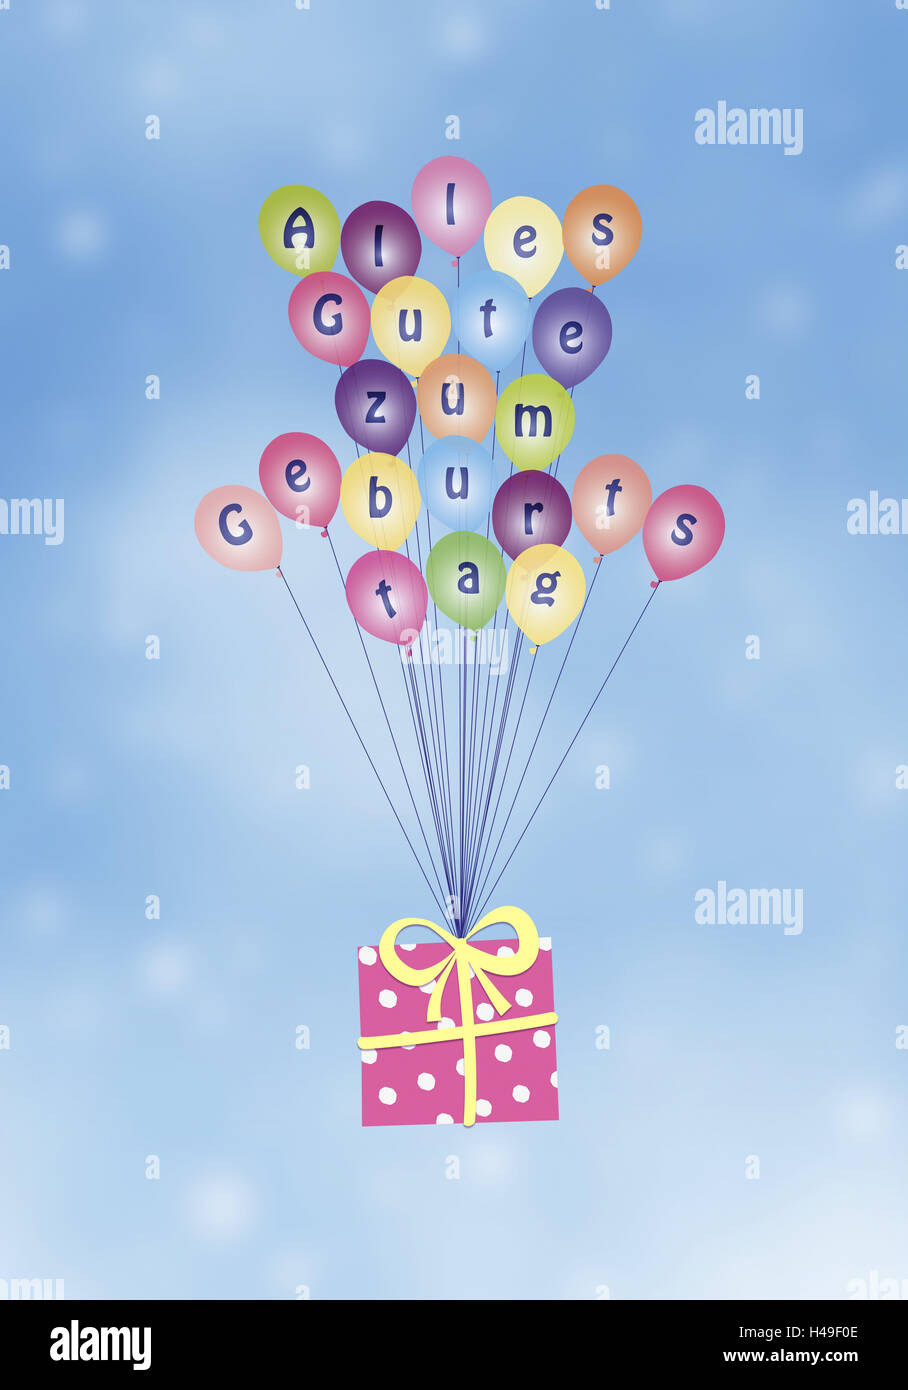 Birthday Motif Stock Photos Amp Birthday Motif Stock Images